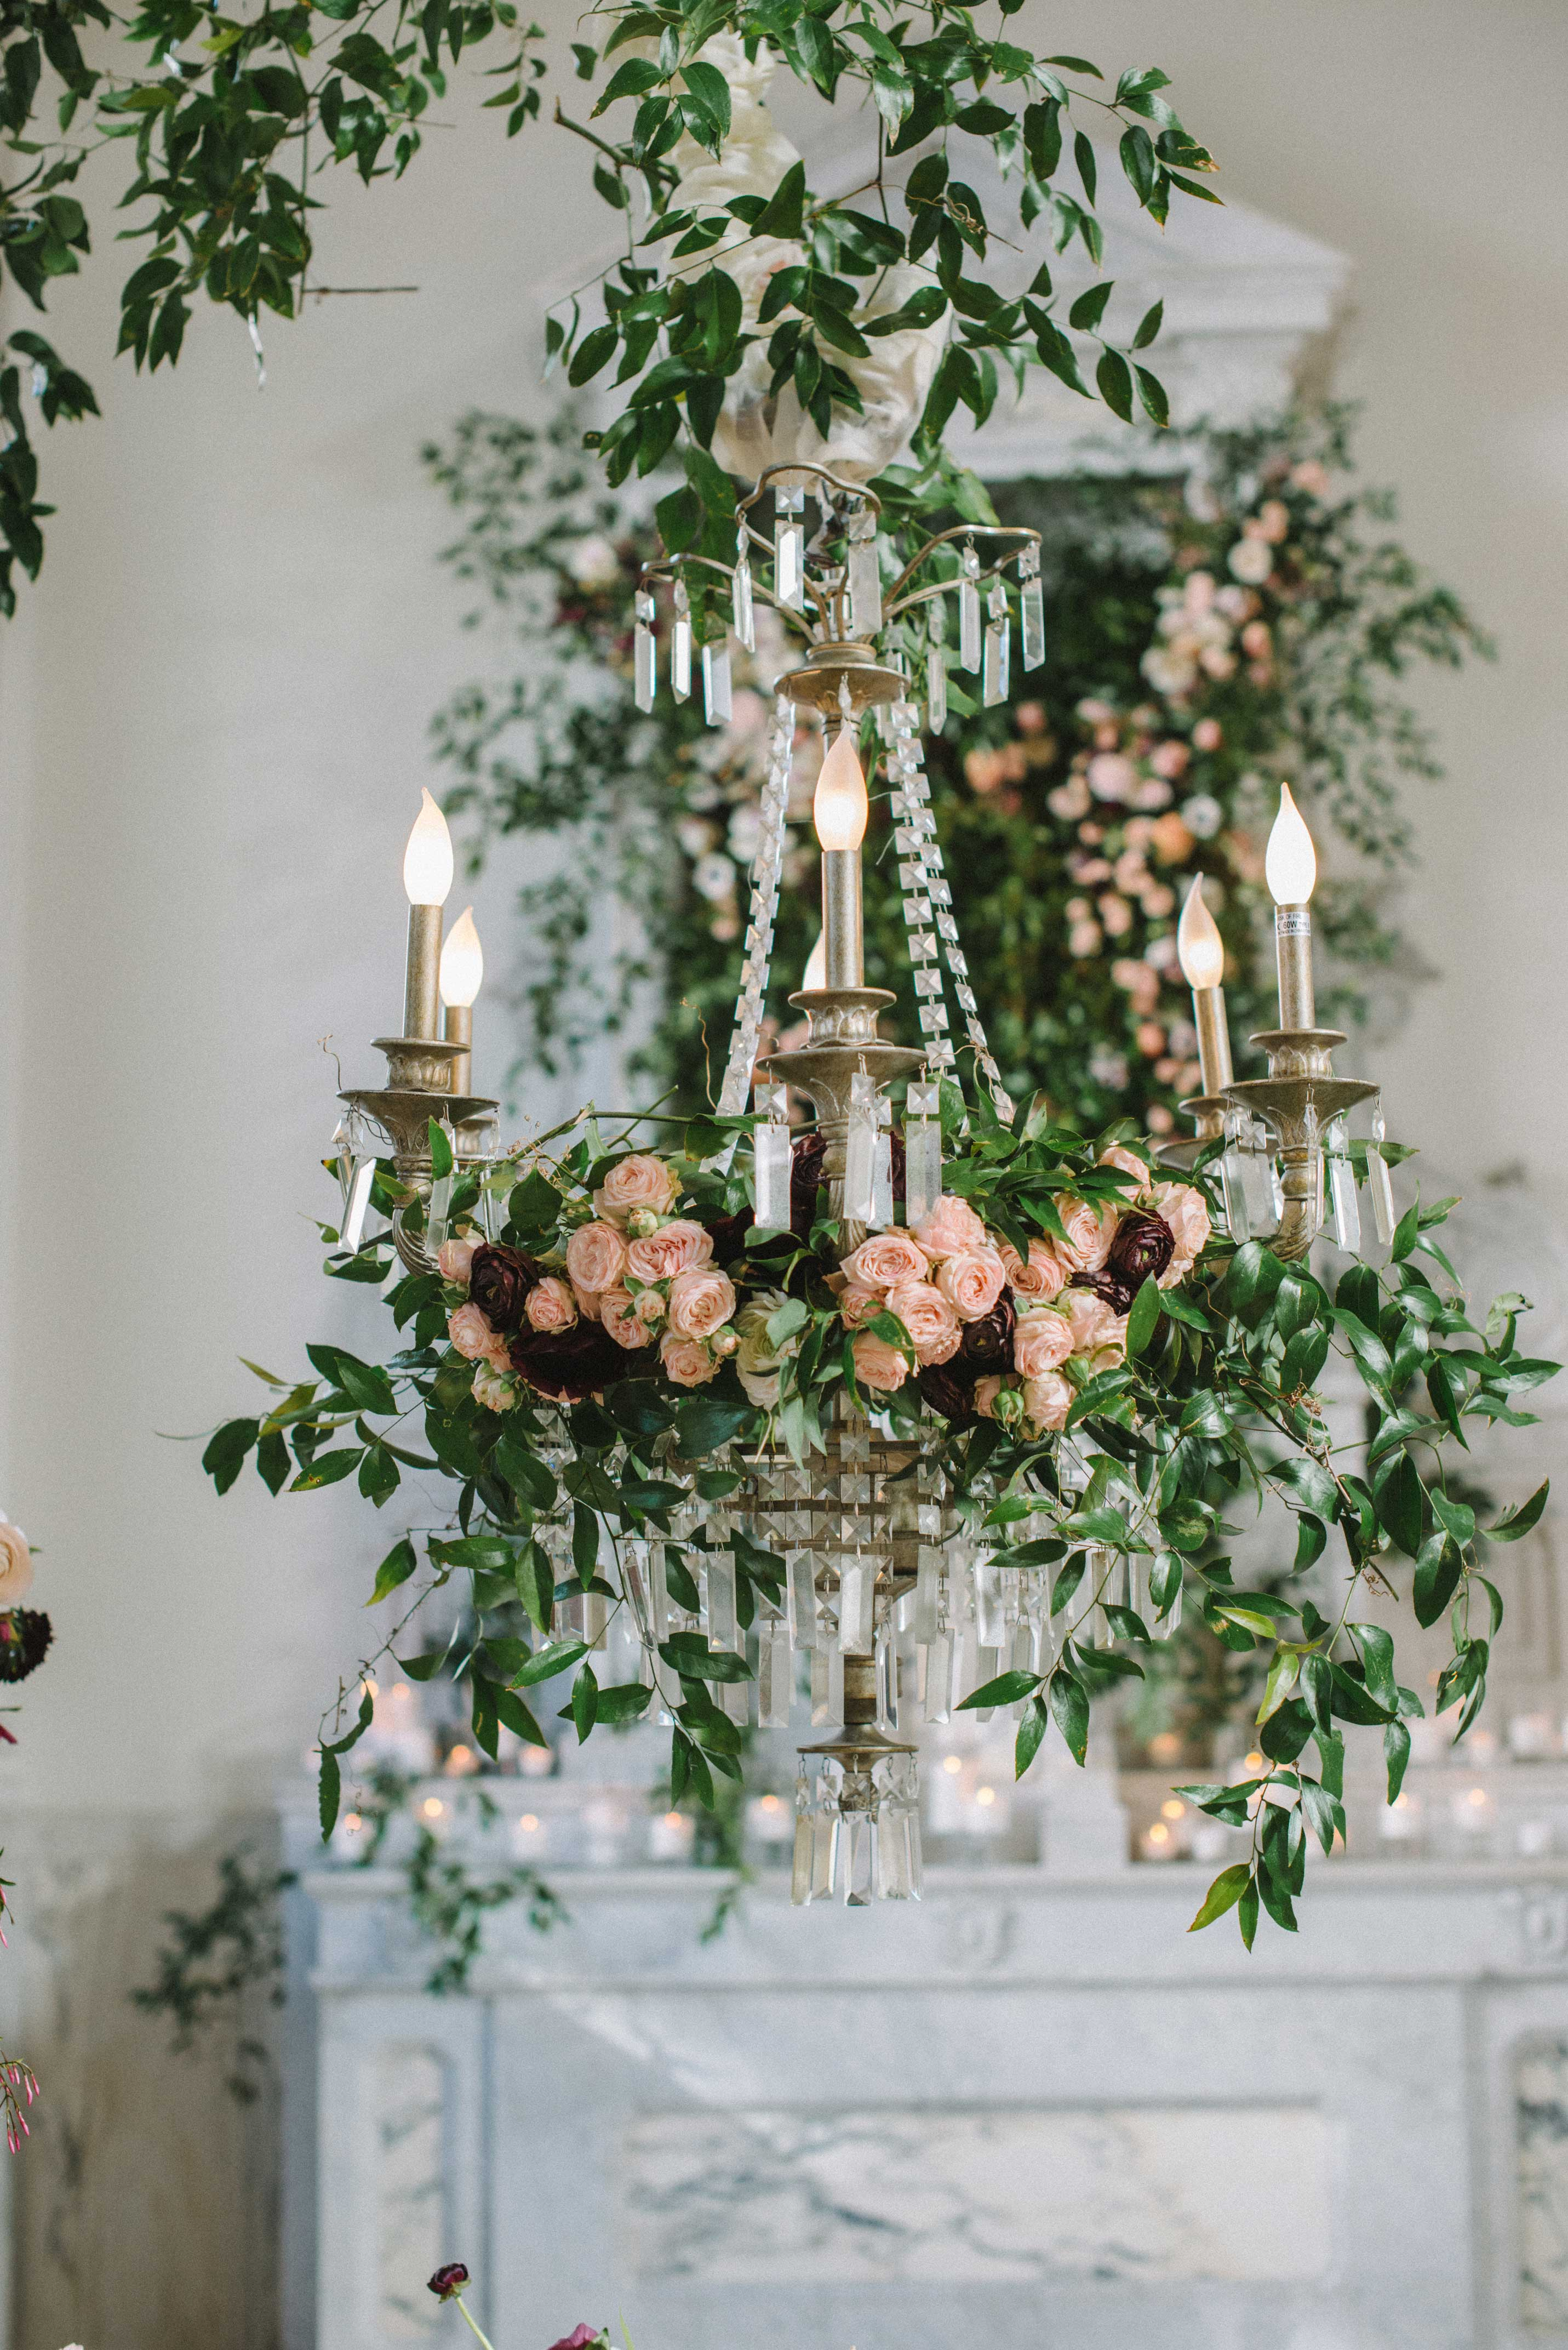 Floral Fixtures From Weddings Suspended From The Ceiling